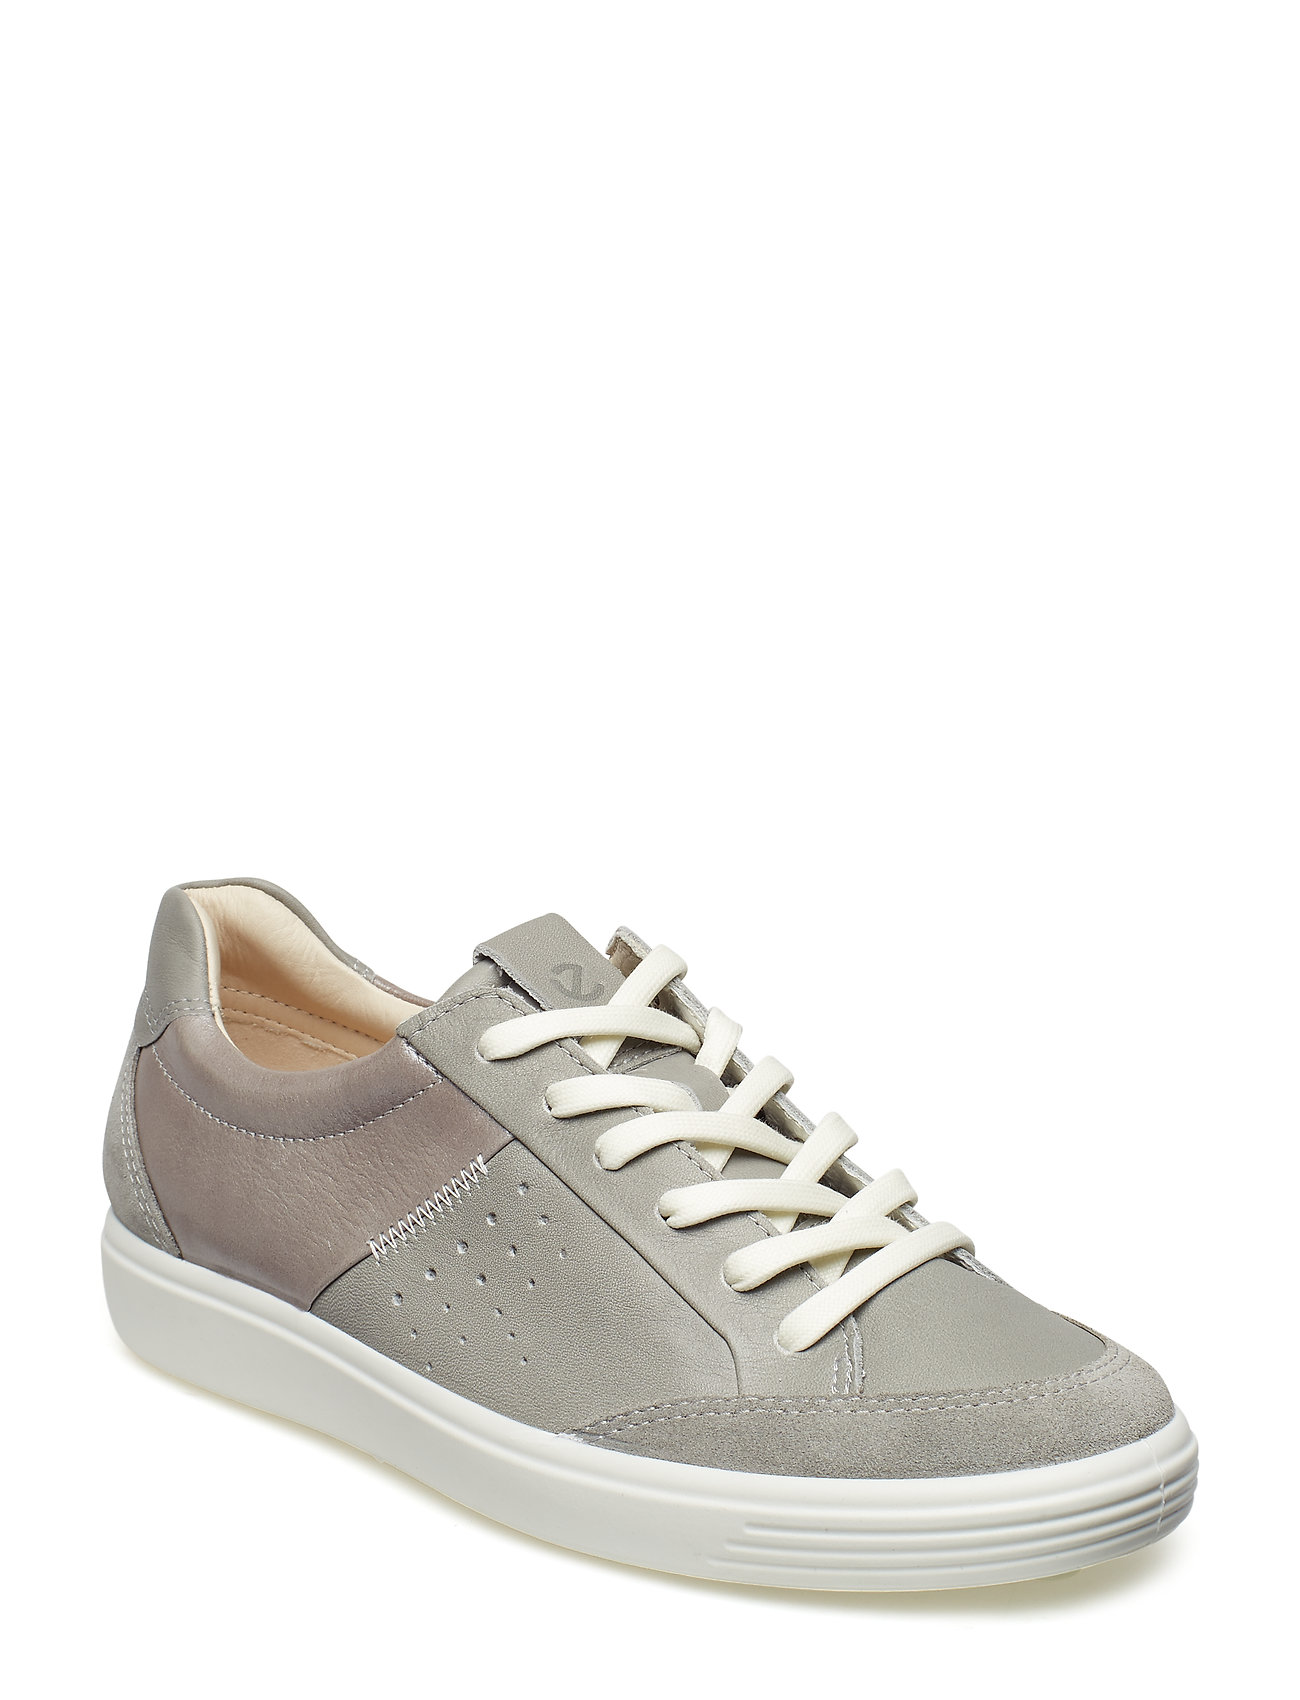 Image of Soft 7 W Low-top Sneakers Grå ECCO (3132347217)